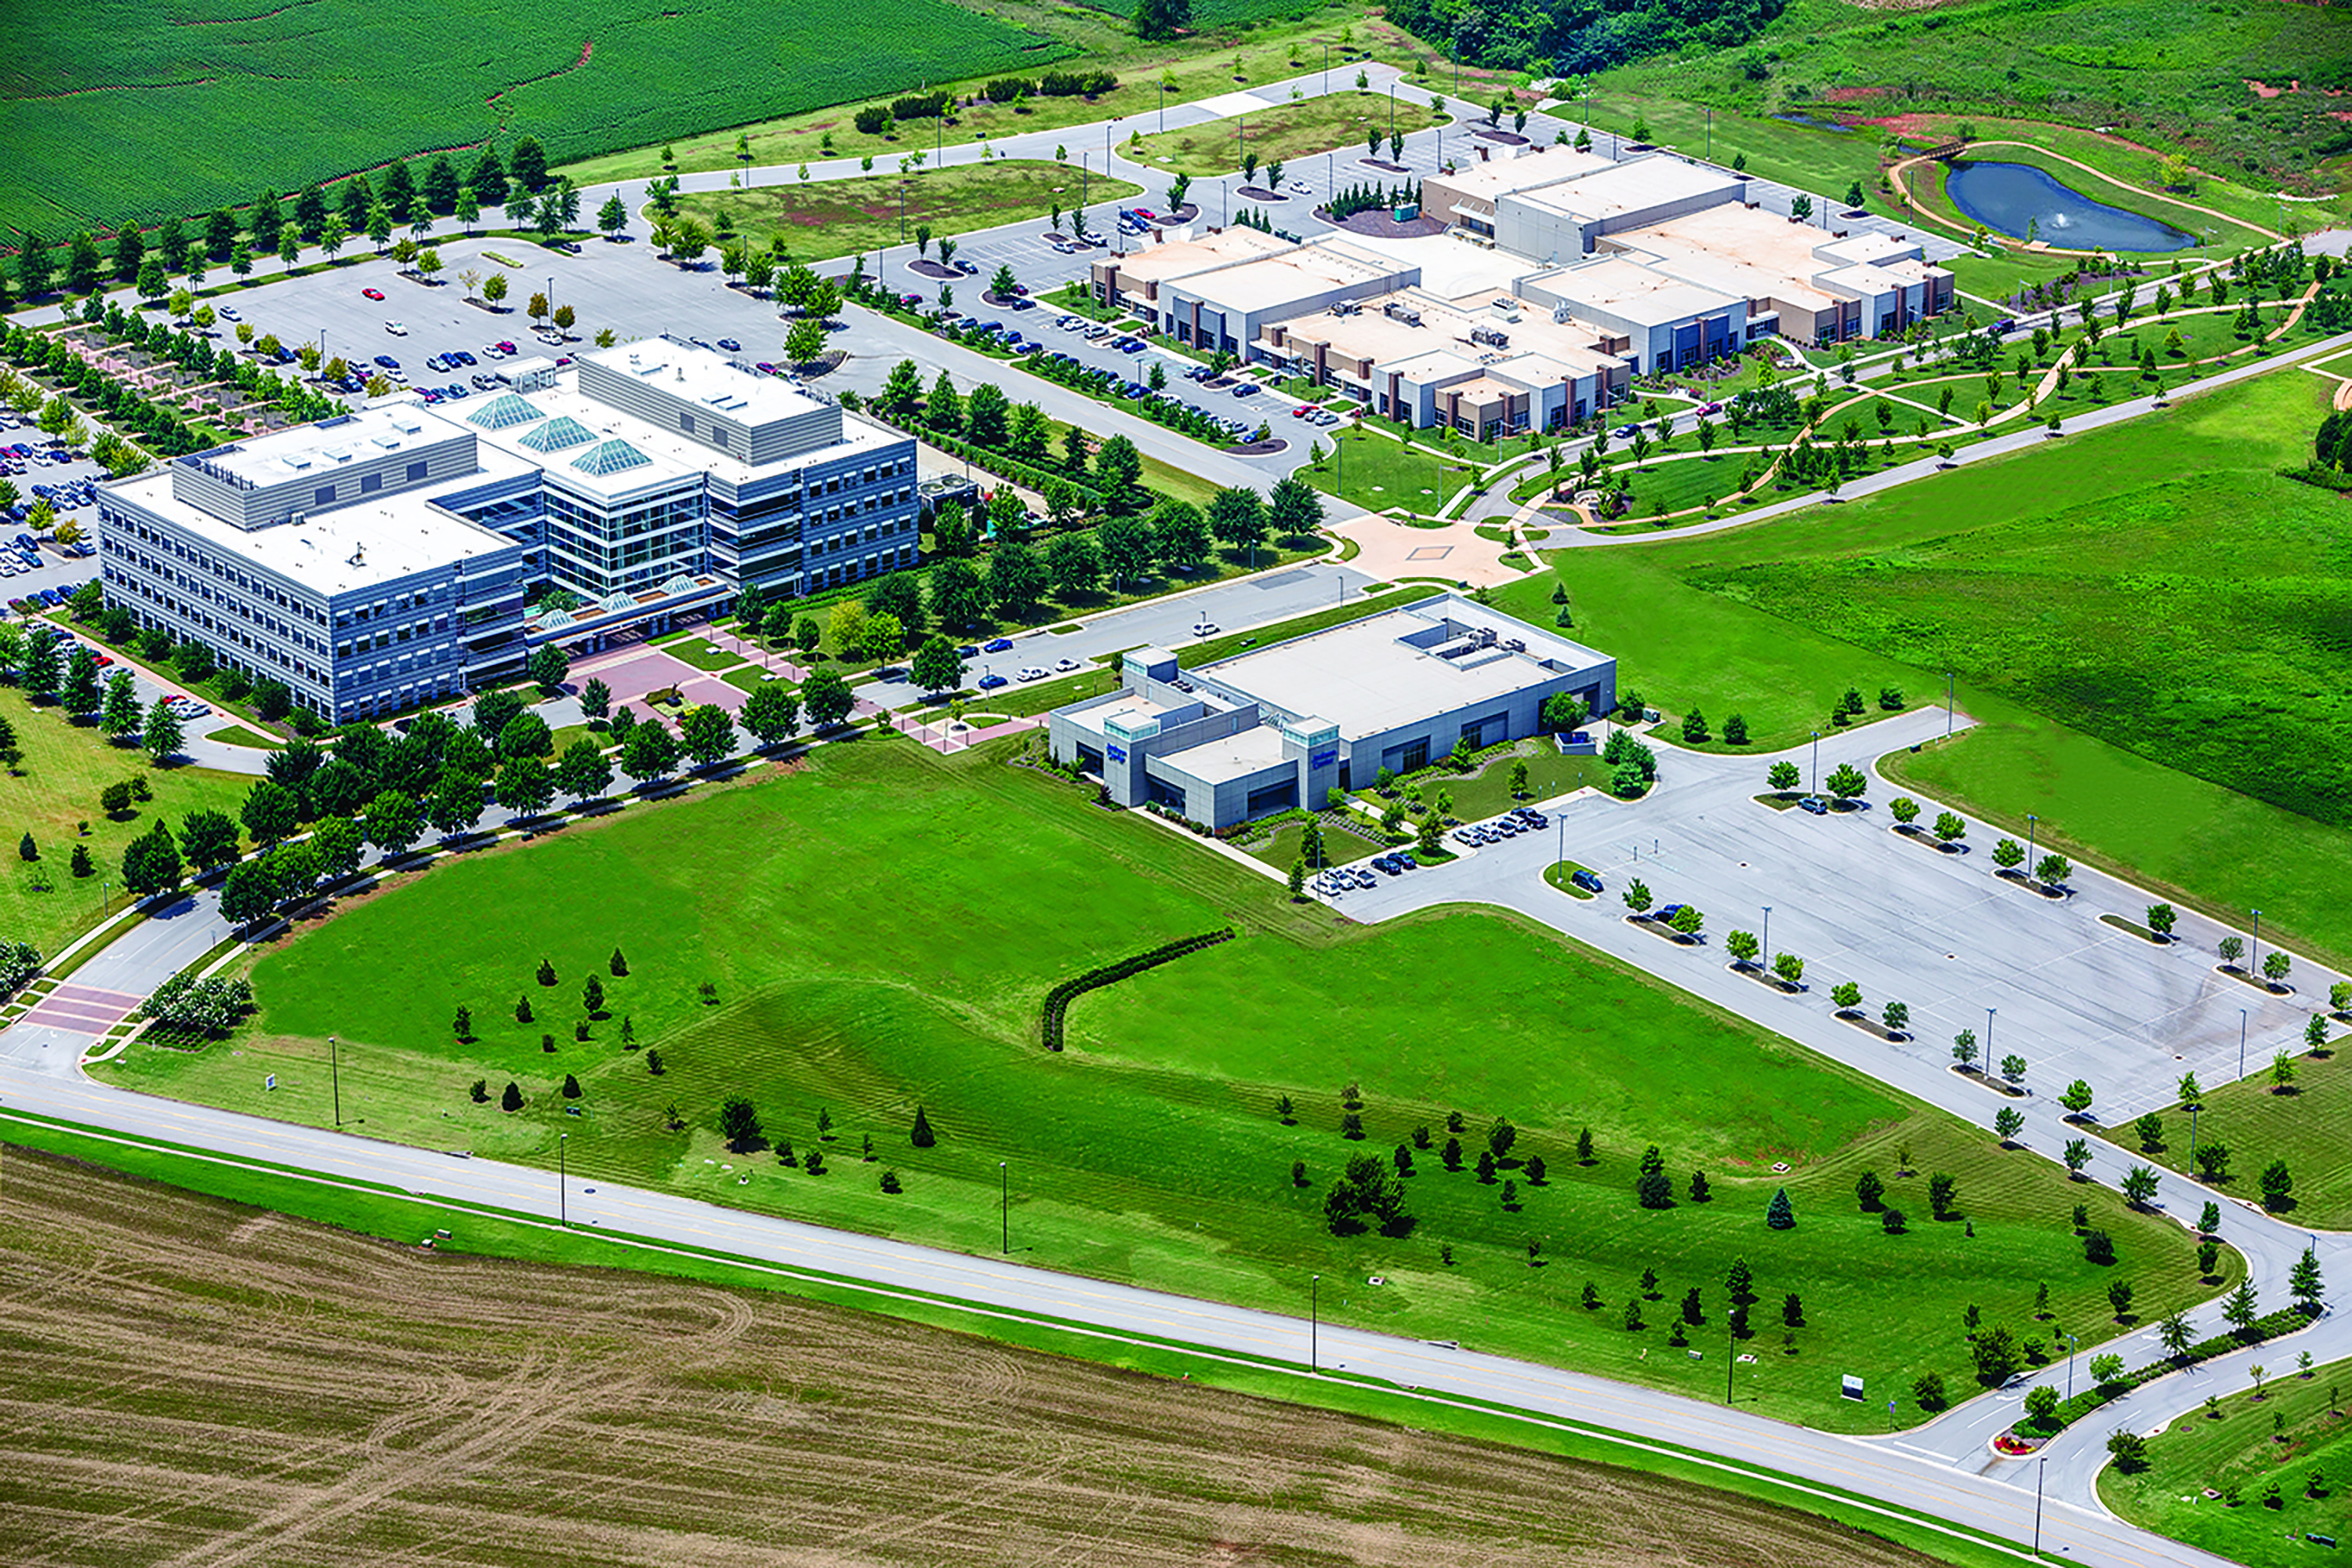 Hudsonalpha receives leed certification for 701 mcmillian way providing a sustainable building for future growth xflitez Choice Image